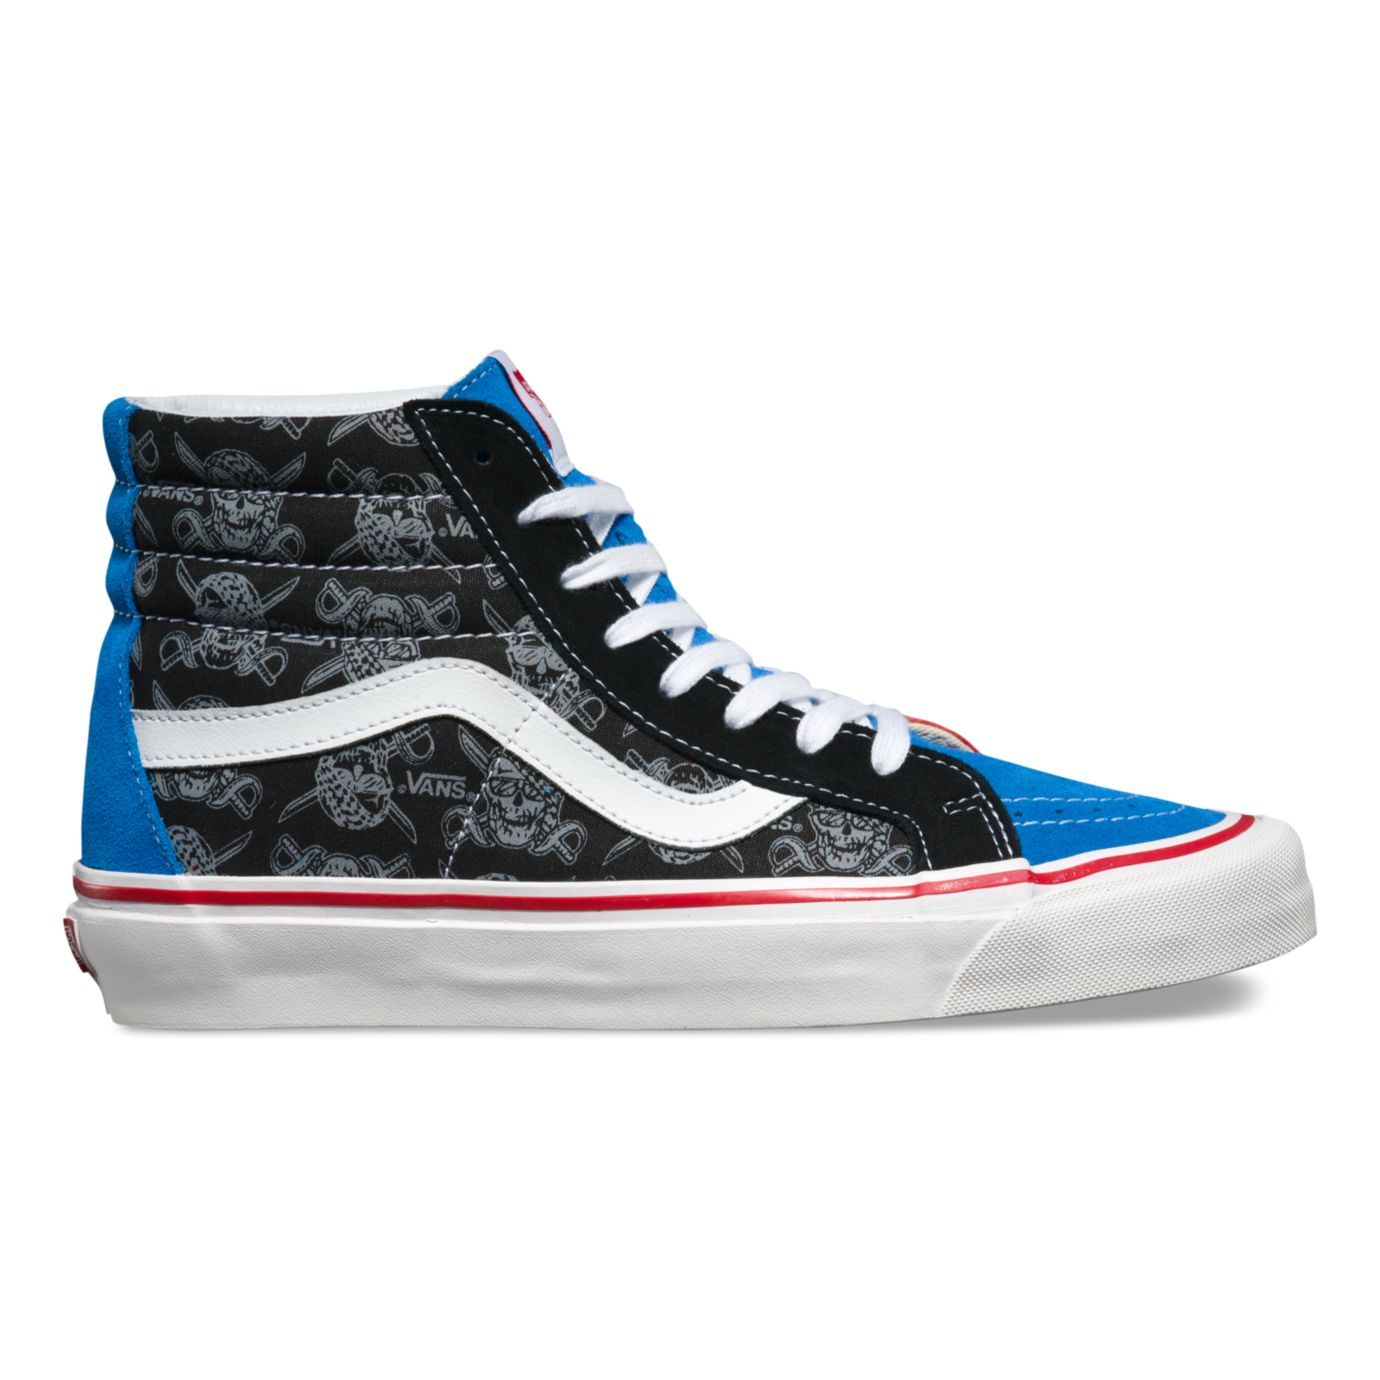 156679fc65a The 50th Anniversary Edition Van Doren Approved Collection